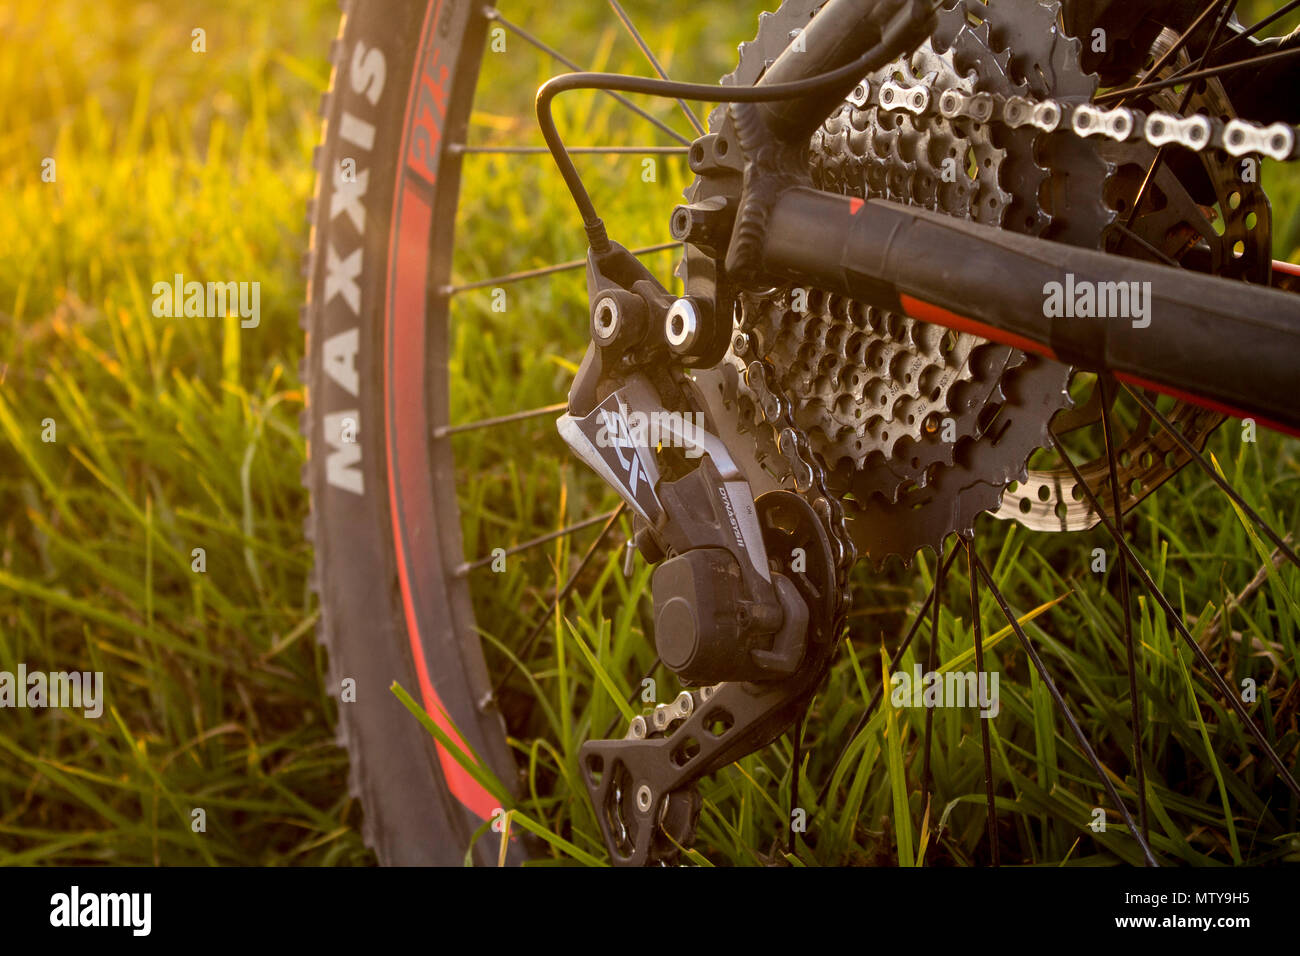 Tlaxcala, Mexico - May 27.2018. Shimano SLX 1x11 drivetrain groupset were introduced in 2017 by the japanese company shimano - Stock Image